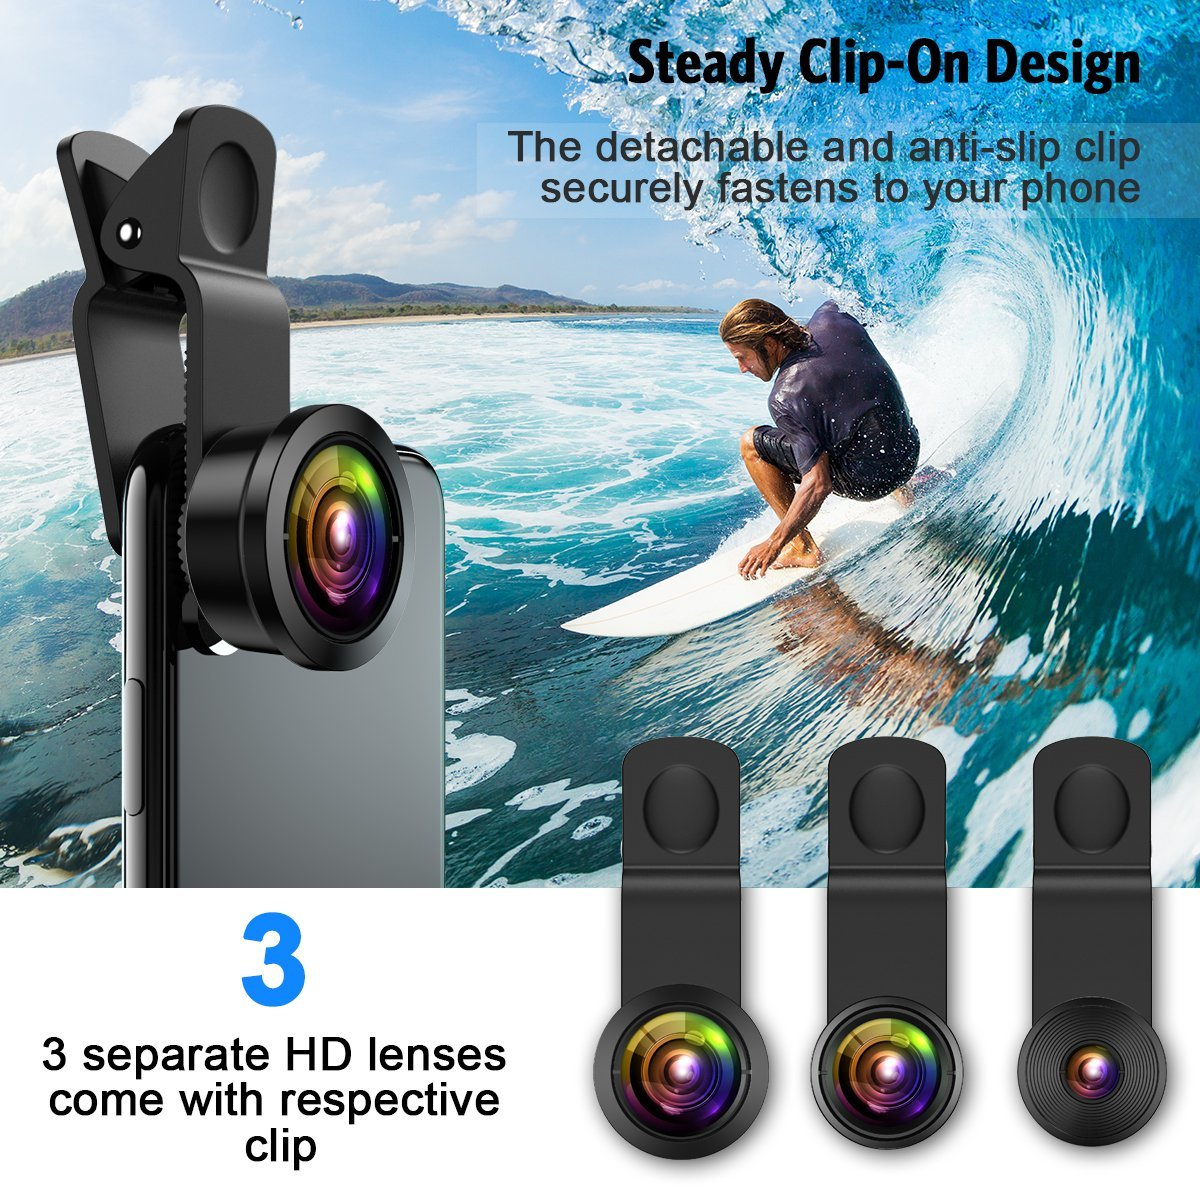 [Upgraded] AMIR For iPhone Camera Lens, 0.4X Super Wide Angle Lens + 195° Fisheye Lens & 15X Macro Lens, 3 IN 1 Cell Phone Camera Lens For iPhone X, iPhone 8/7 Plus, Samsung, Other Smartphones by AMIR (Image #6)